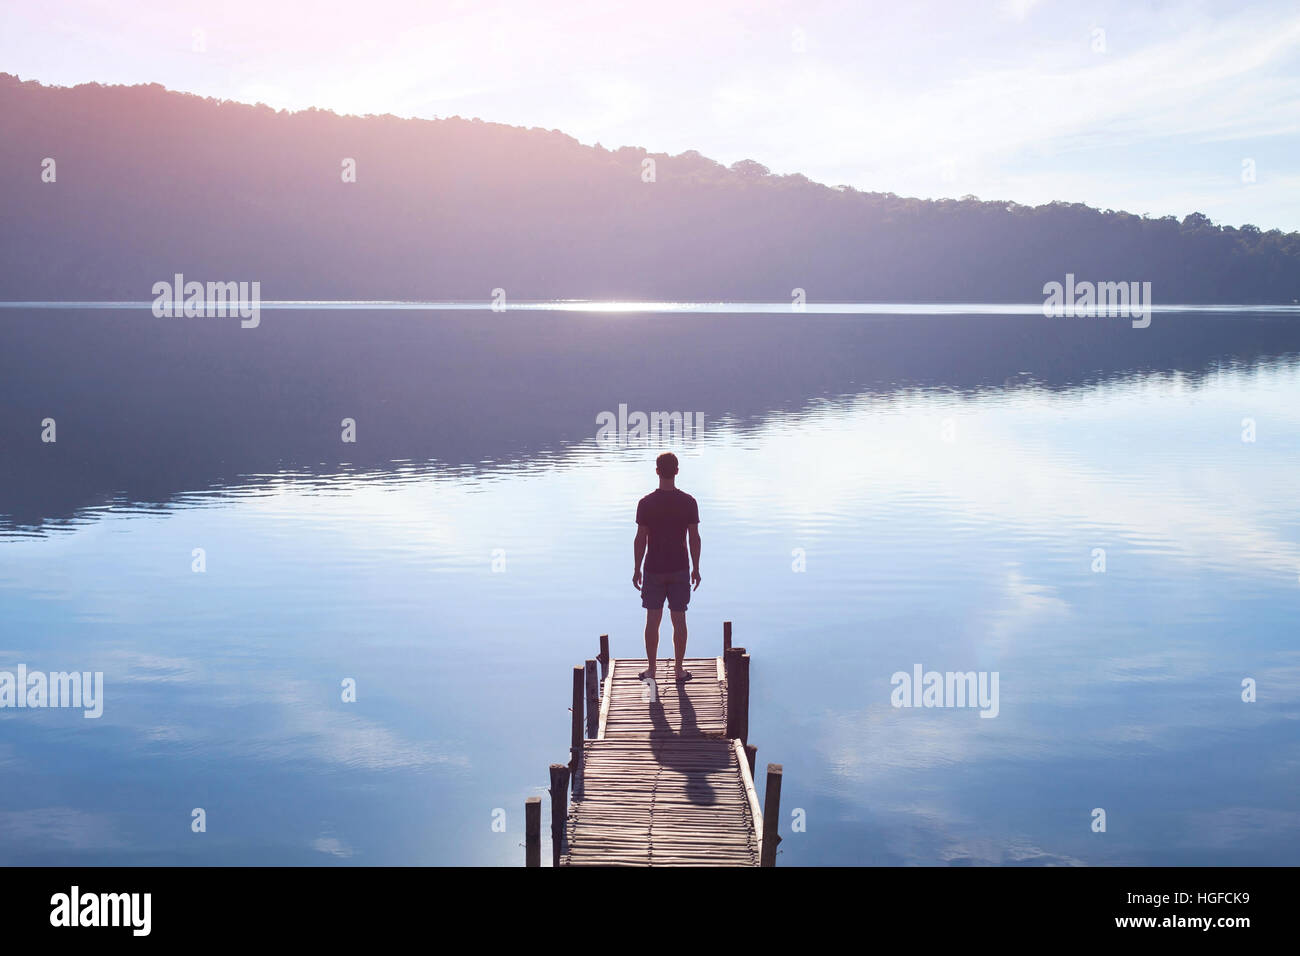 dreamer, silhouette of man standing on the lake wooden pier at sunset, human strength, psychology concept - Stock Image